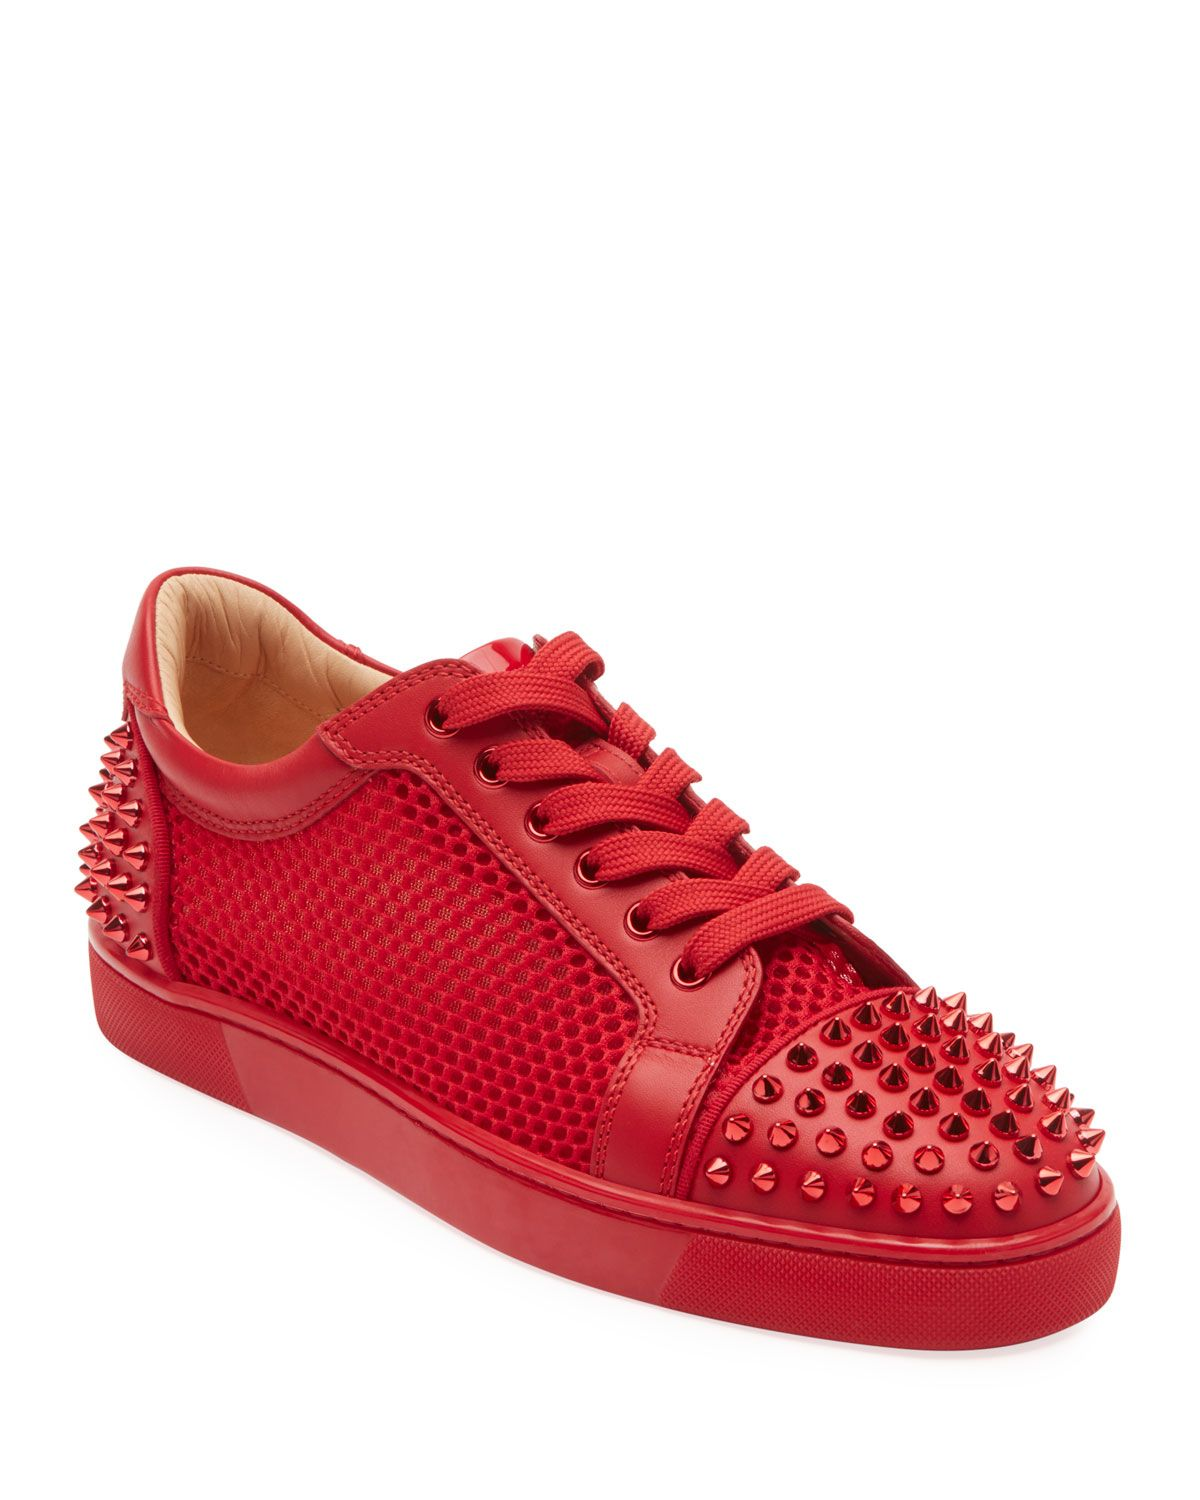 louboutin mens low top trainers